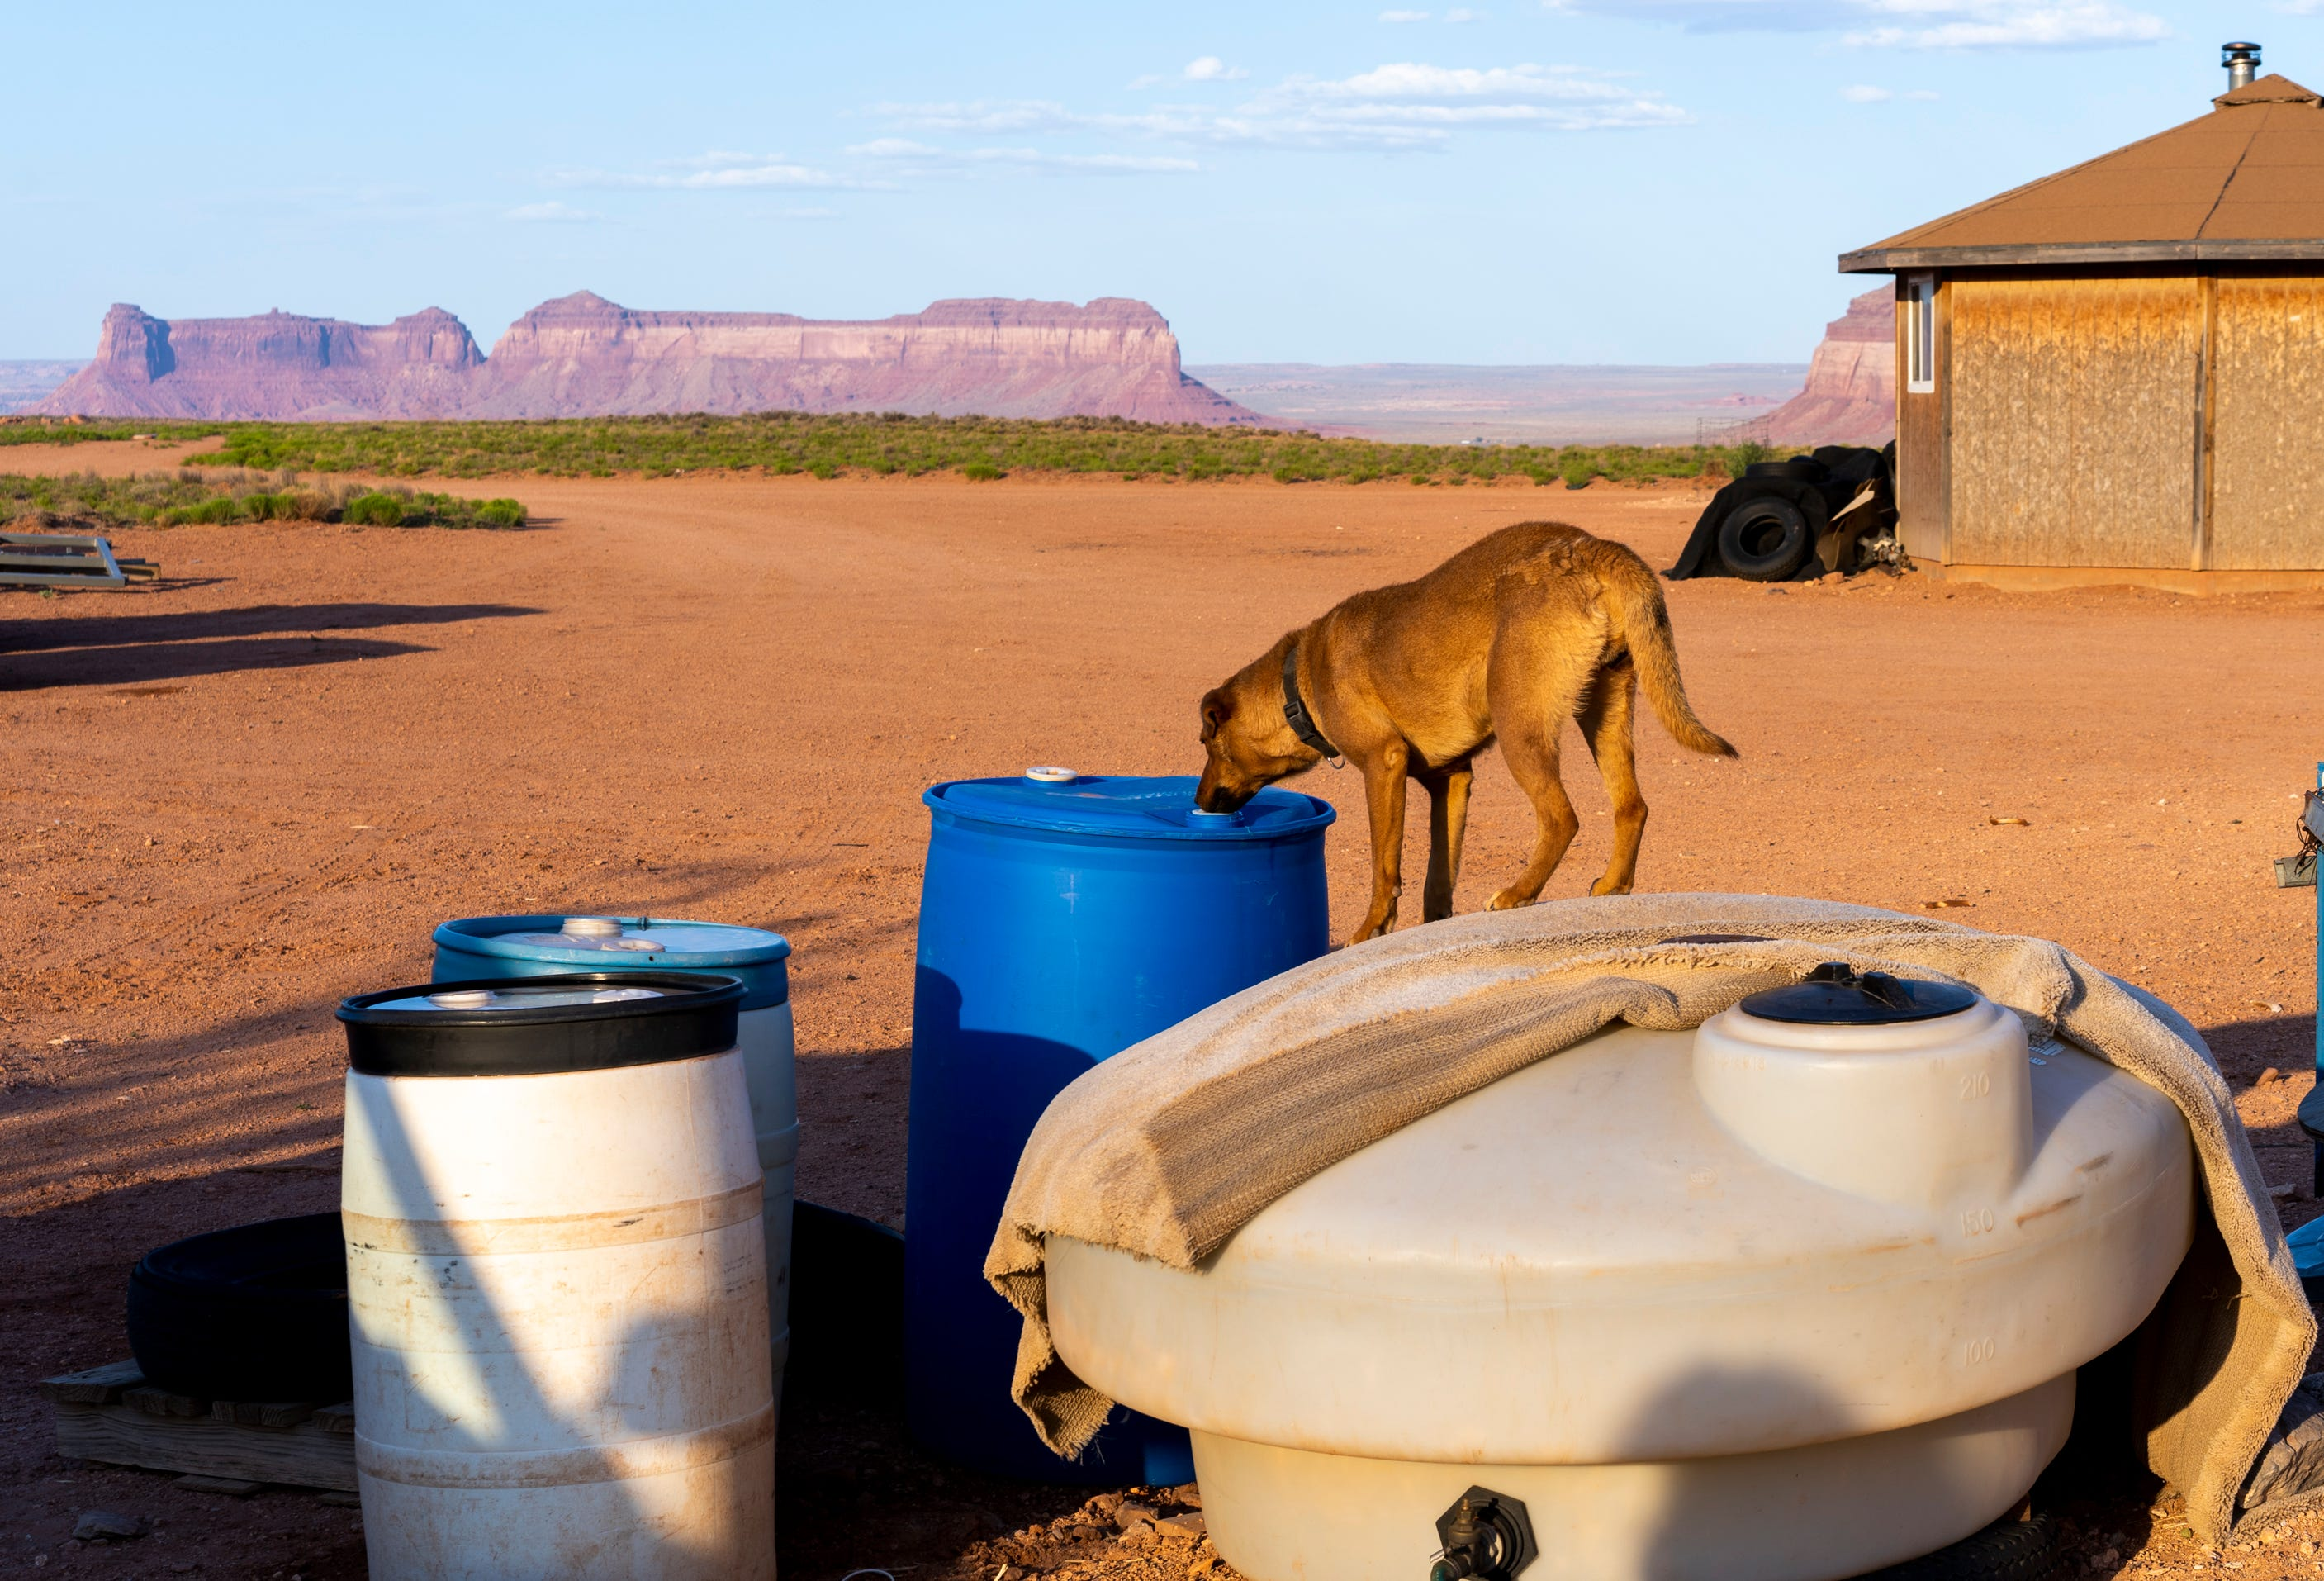 A dog sniffs a water barrel outside Tommy Rock's home in Oljato, Utah, on the Navajo Nation.